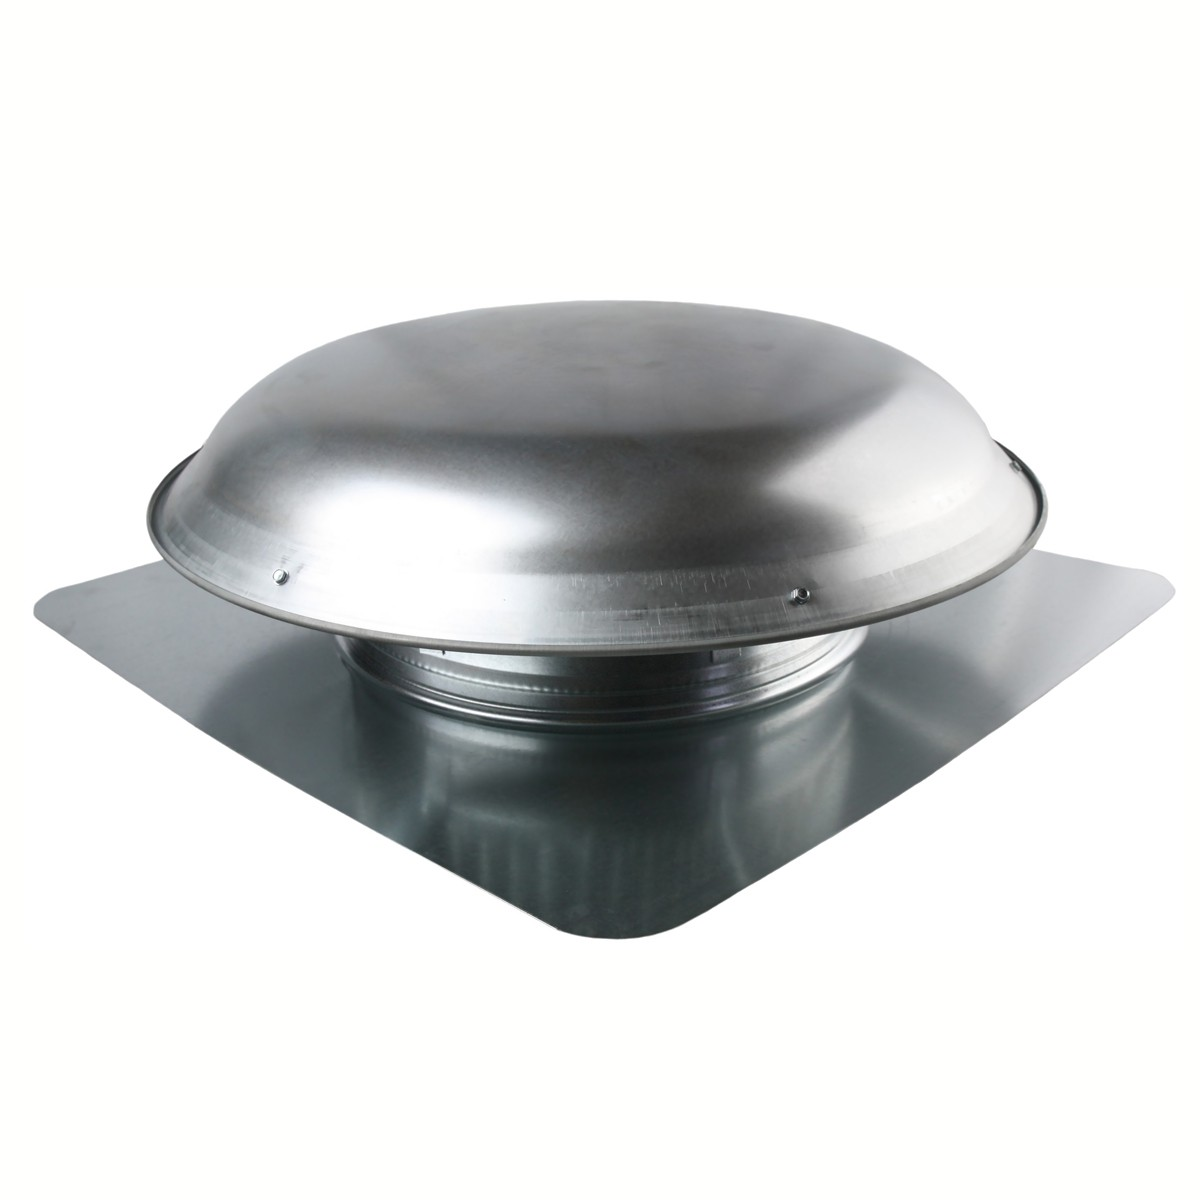 BUT VXNRGTAAWG Gray 1400 CFM Roof Fan - Aluminum Dome - 2.1 Amp Energy Efficient PSC Motor LIFETIME WARRANTY